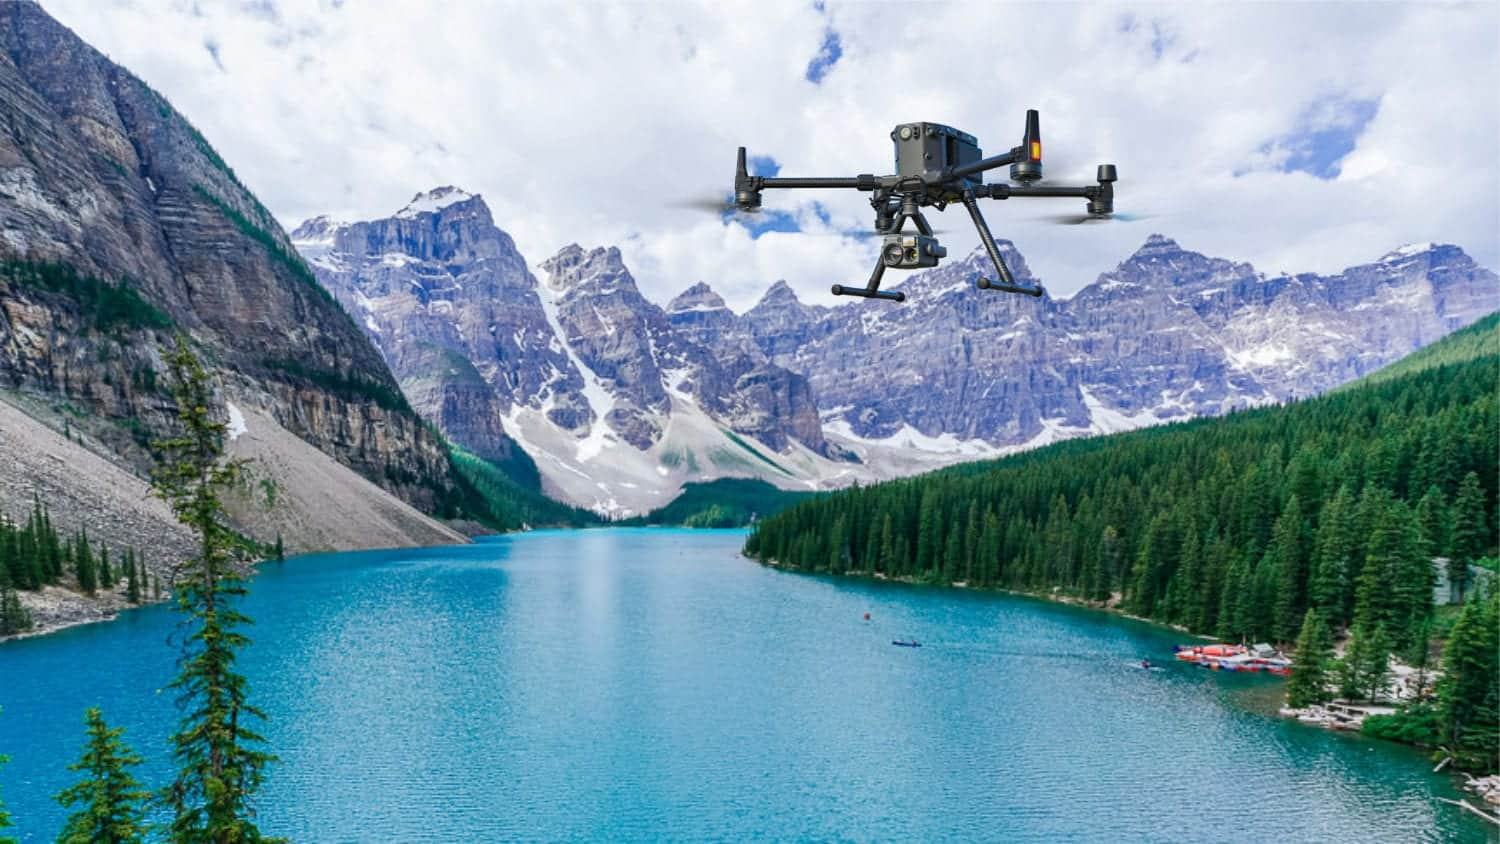 Pricing for the DJI Matrice 300 RTK and Zenmuse H20 series